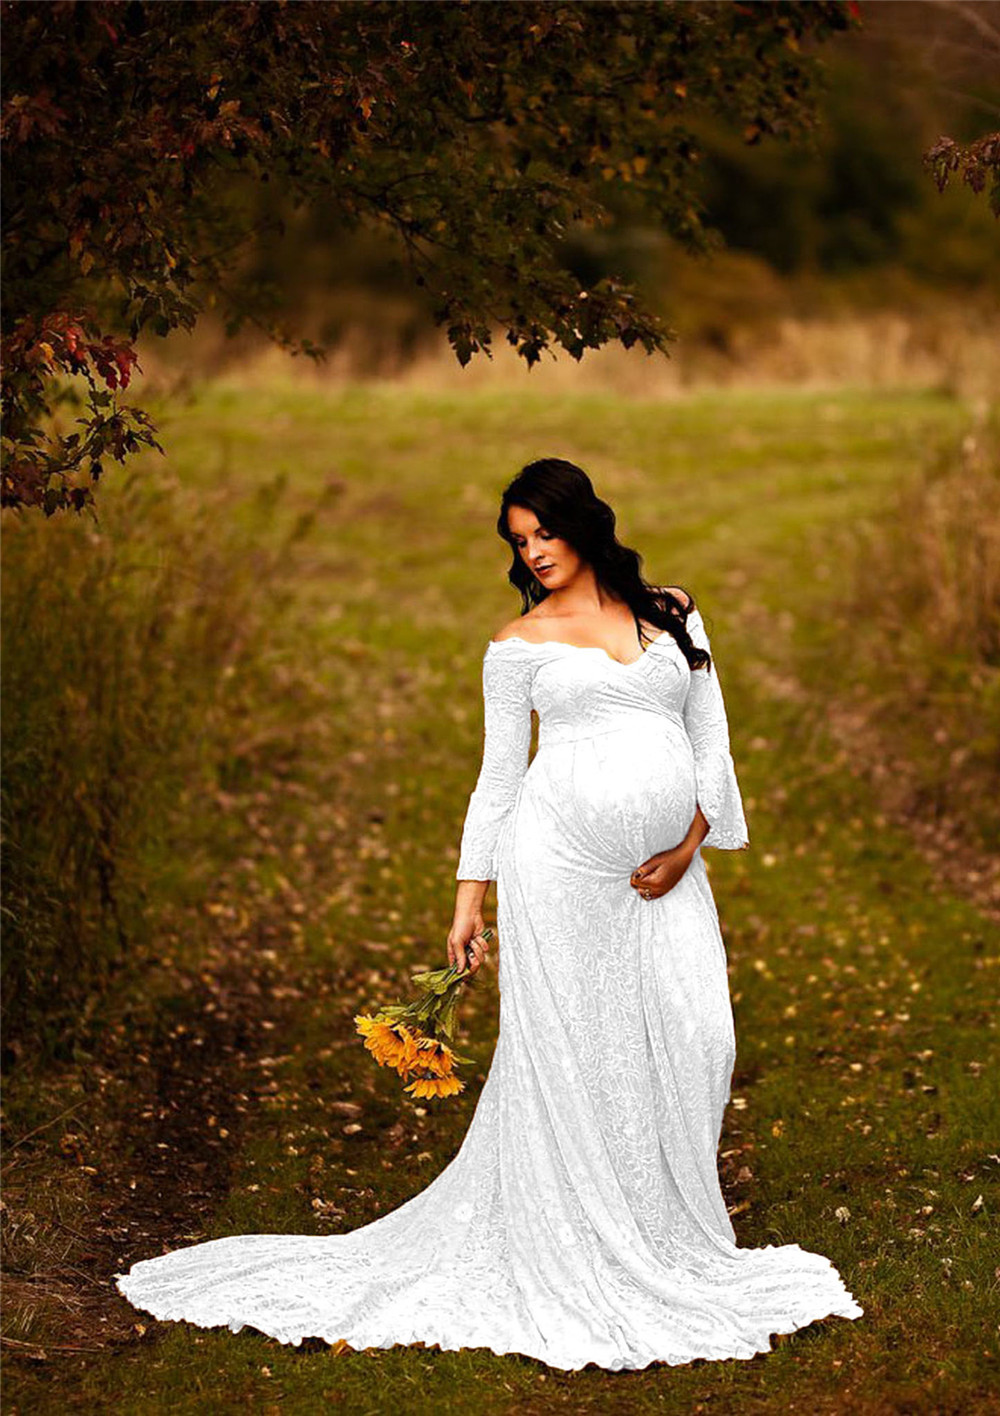 Long Maternity Dresses For Photo Shoot Sexy Lace Fancy Pregnancy Dresses Flare Sleeve Pregnant Women Maxi Gown Photography Props (17)